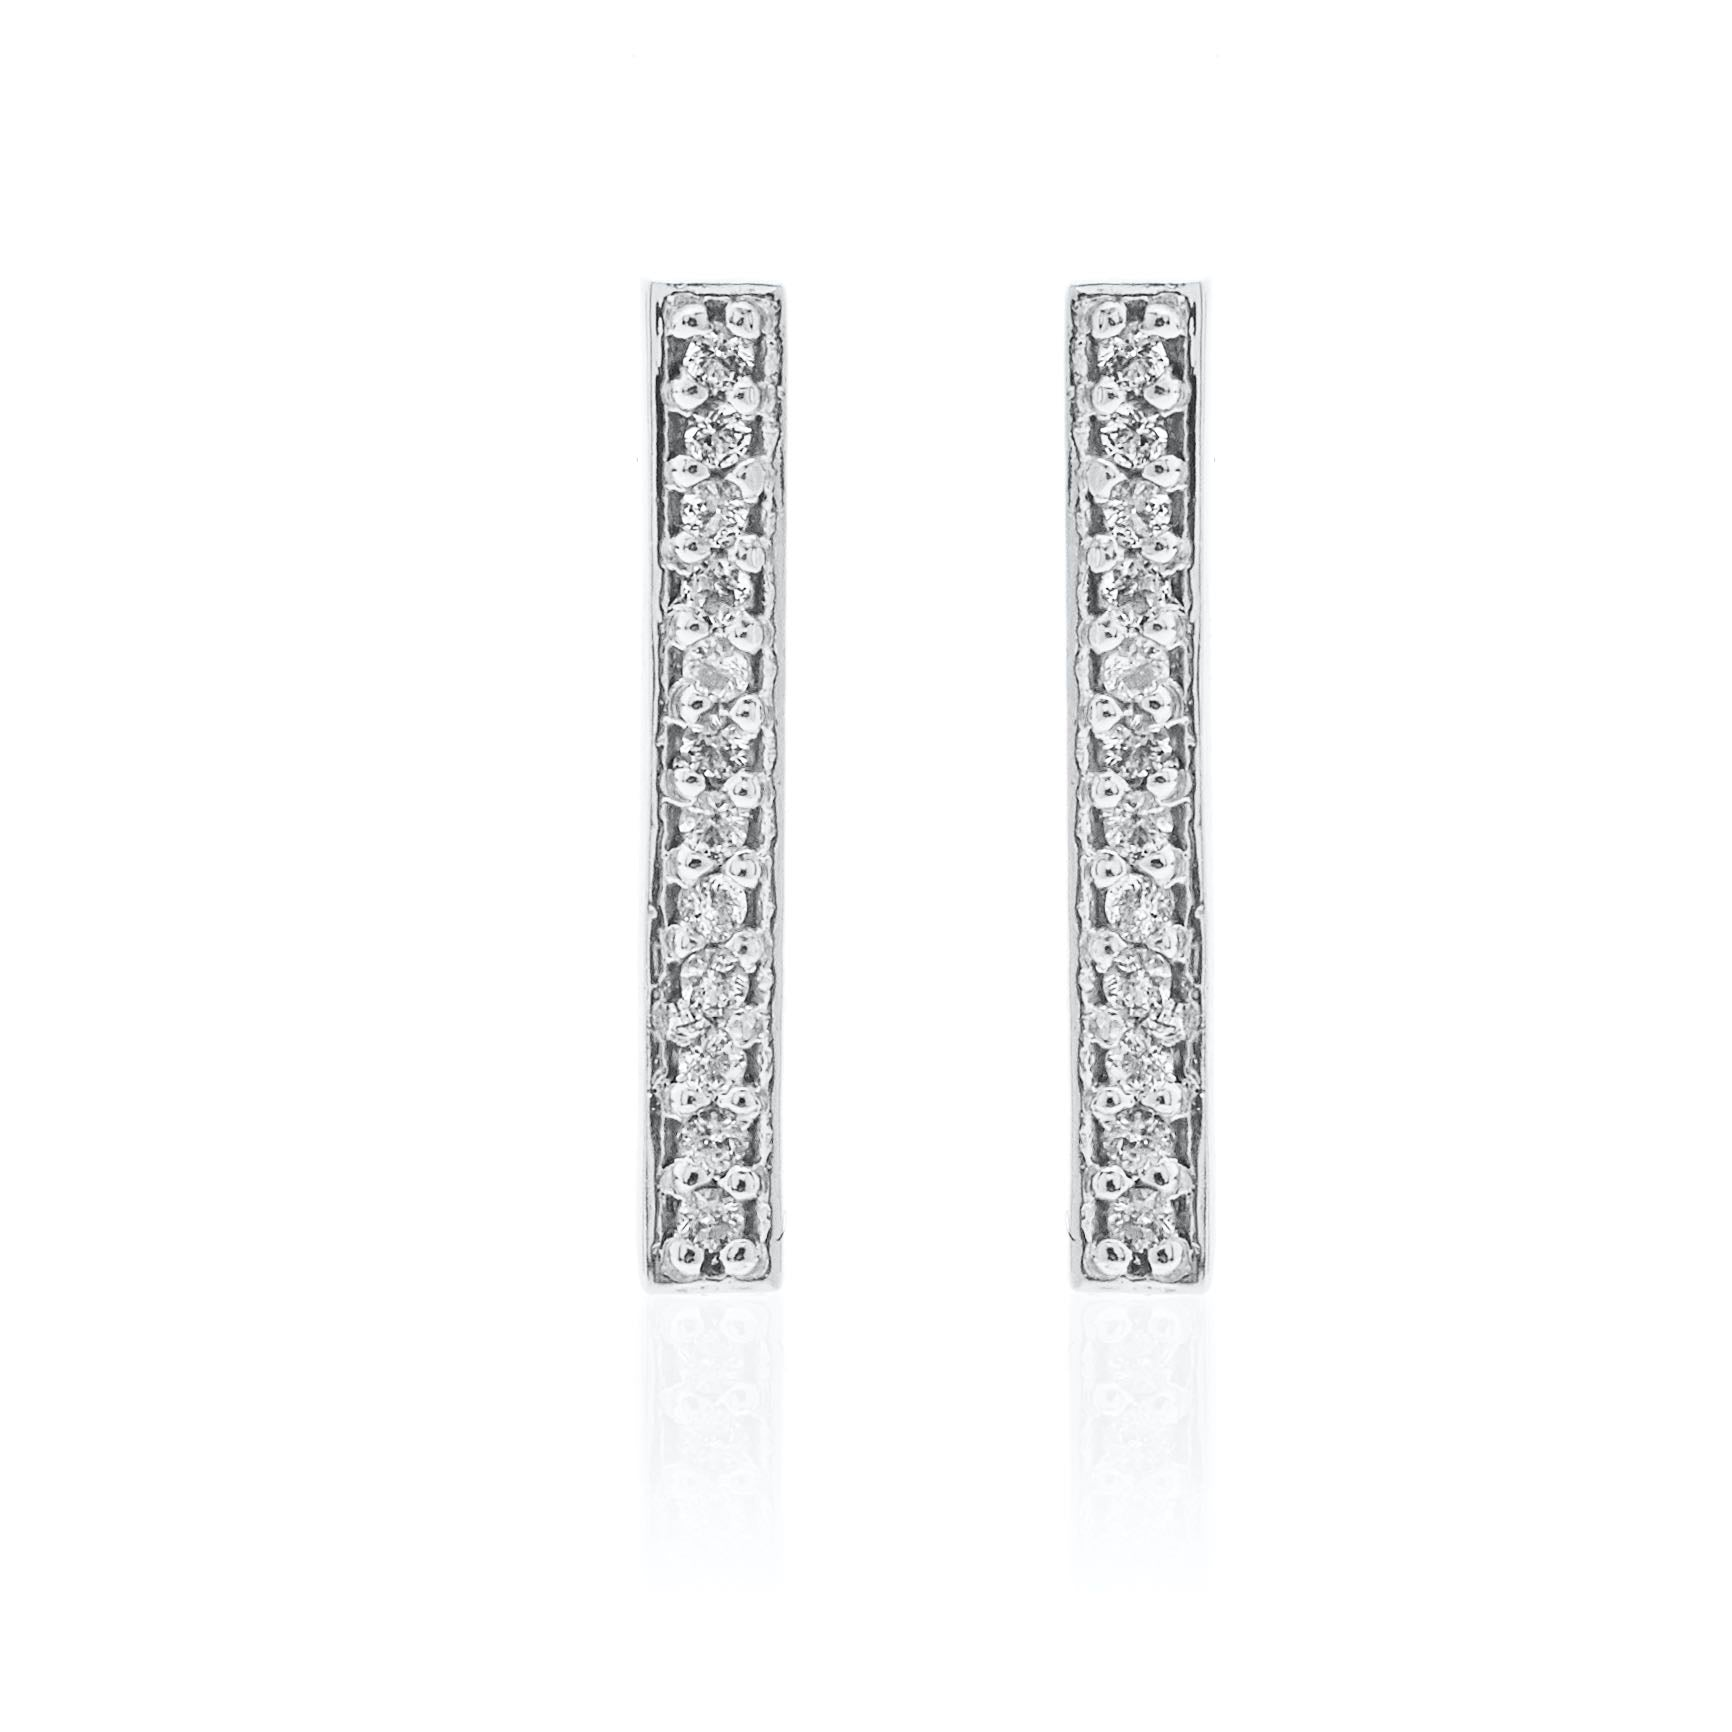 Silk & Steel Jewellery Superfine Bar Ear Climber Silver and White Topaz